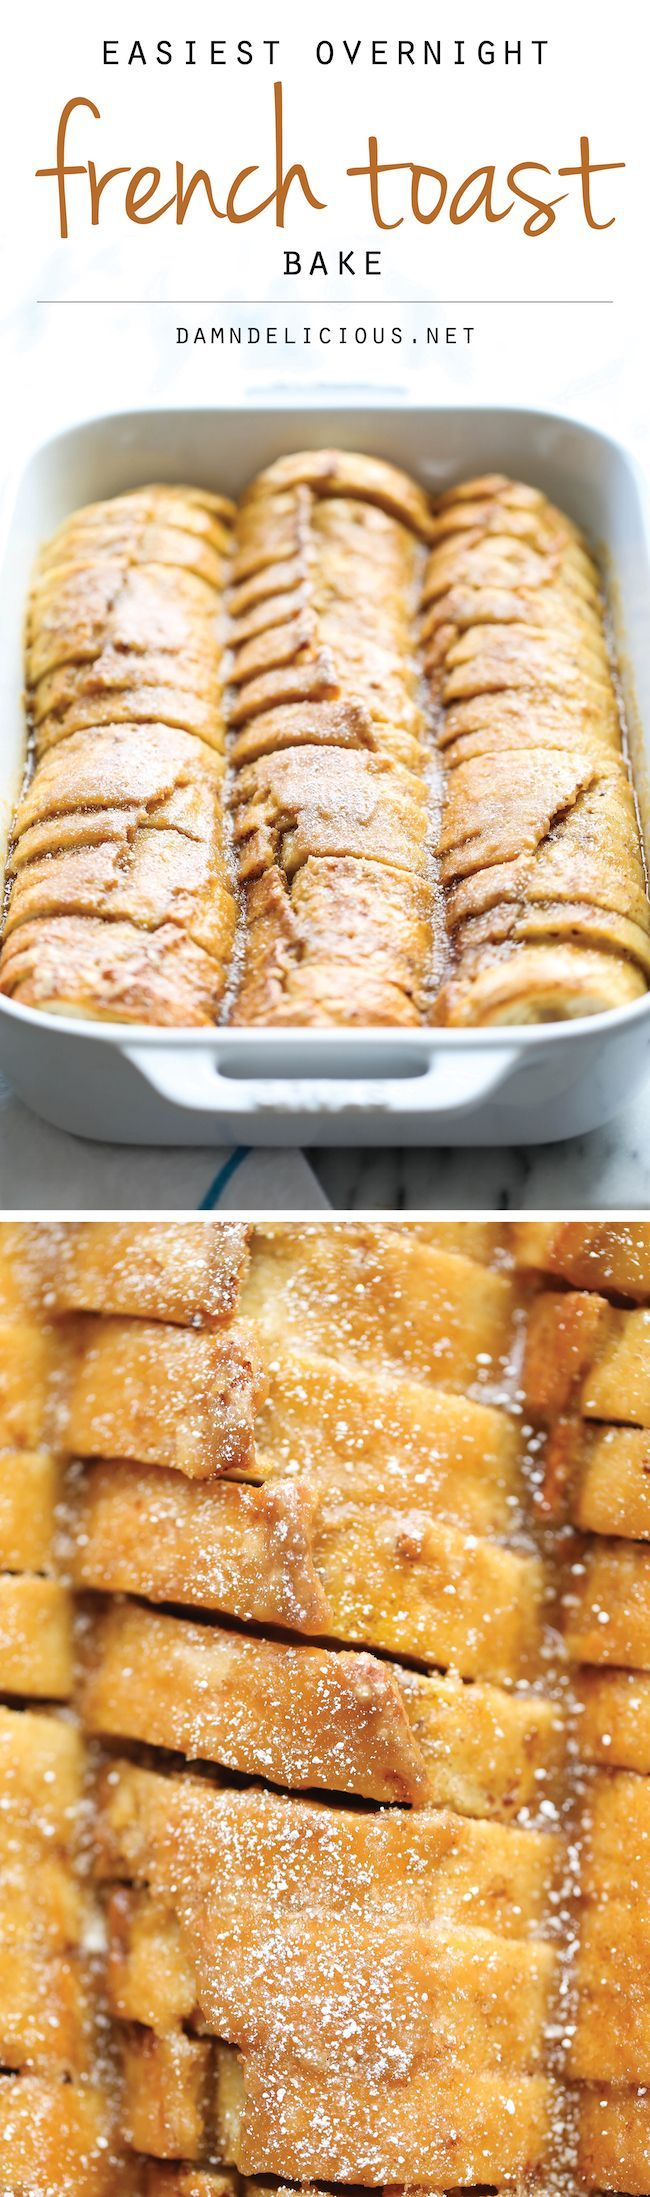 Easiest Overnight French Toast Bake - You can easily prep this the night before in only 10 min. Then just pop it in the oven right before serving. So easy! #frenchtoast